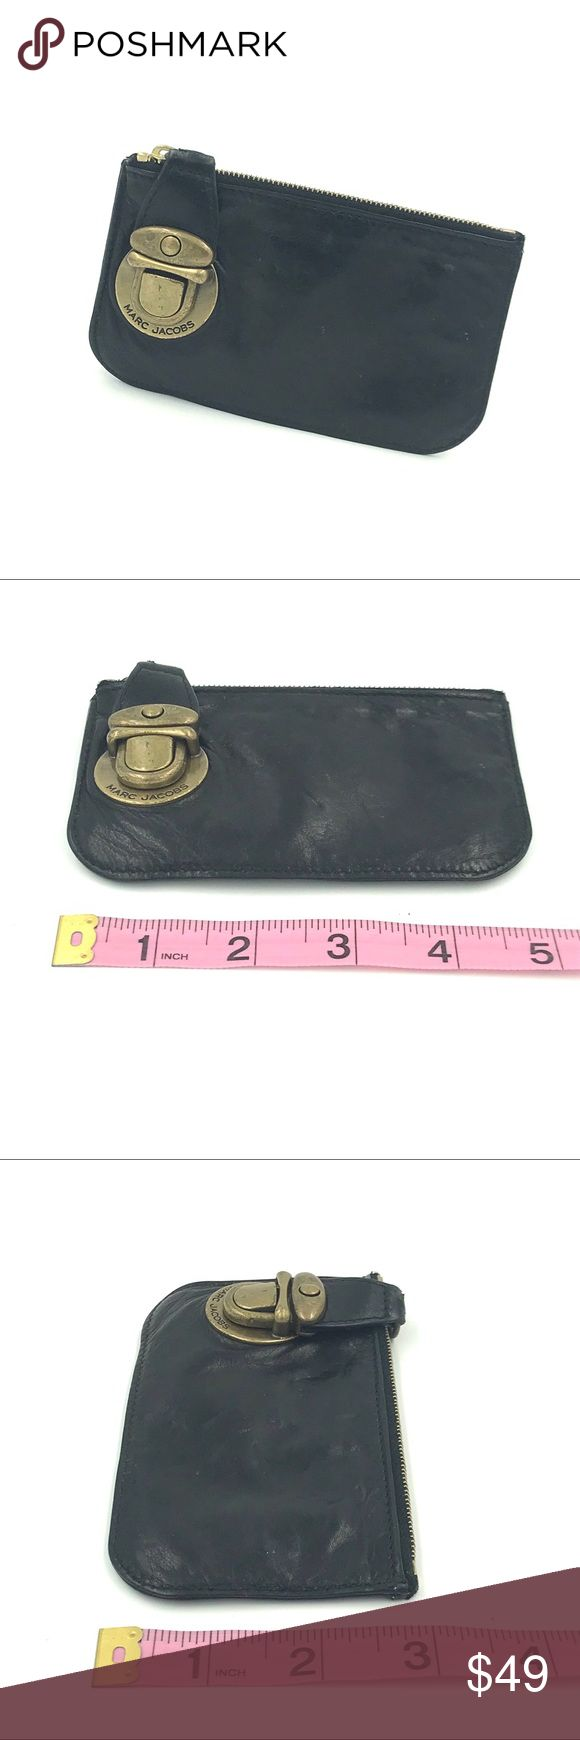 """Marc Jacobs leather card/ID case with key ring Authentic Marc Jacobs flat leather card case. Buttery leather, pink lining with Marc Jacobs logo nameplate inside, push lock and zip top closure, brass hardware. From his early collection. Perfect for a few coins, a few bucks, a few credit cards and your ID! Super cute. Approx 5""""x3"""". Marc Jacobs Bags Wallets"""